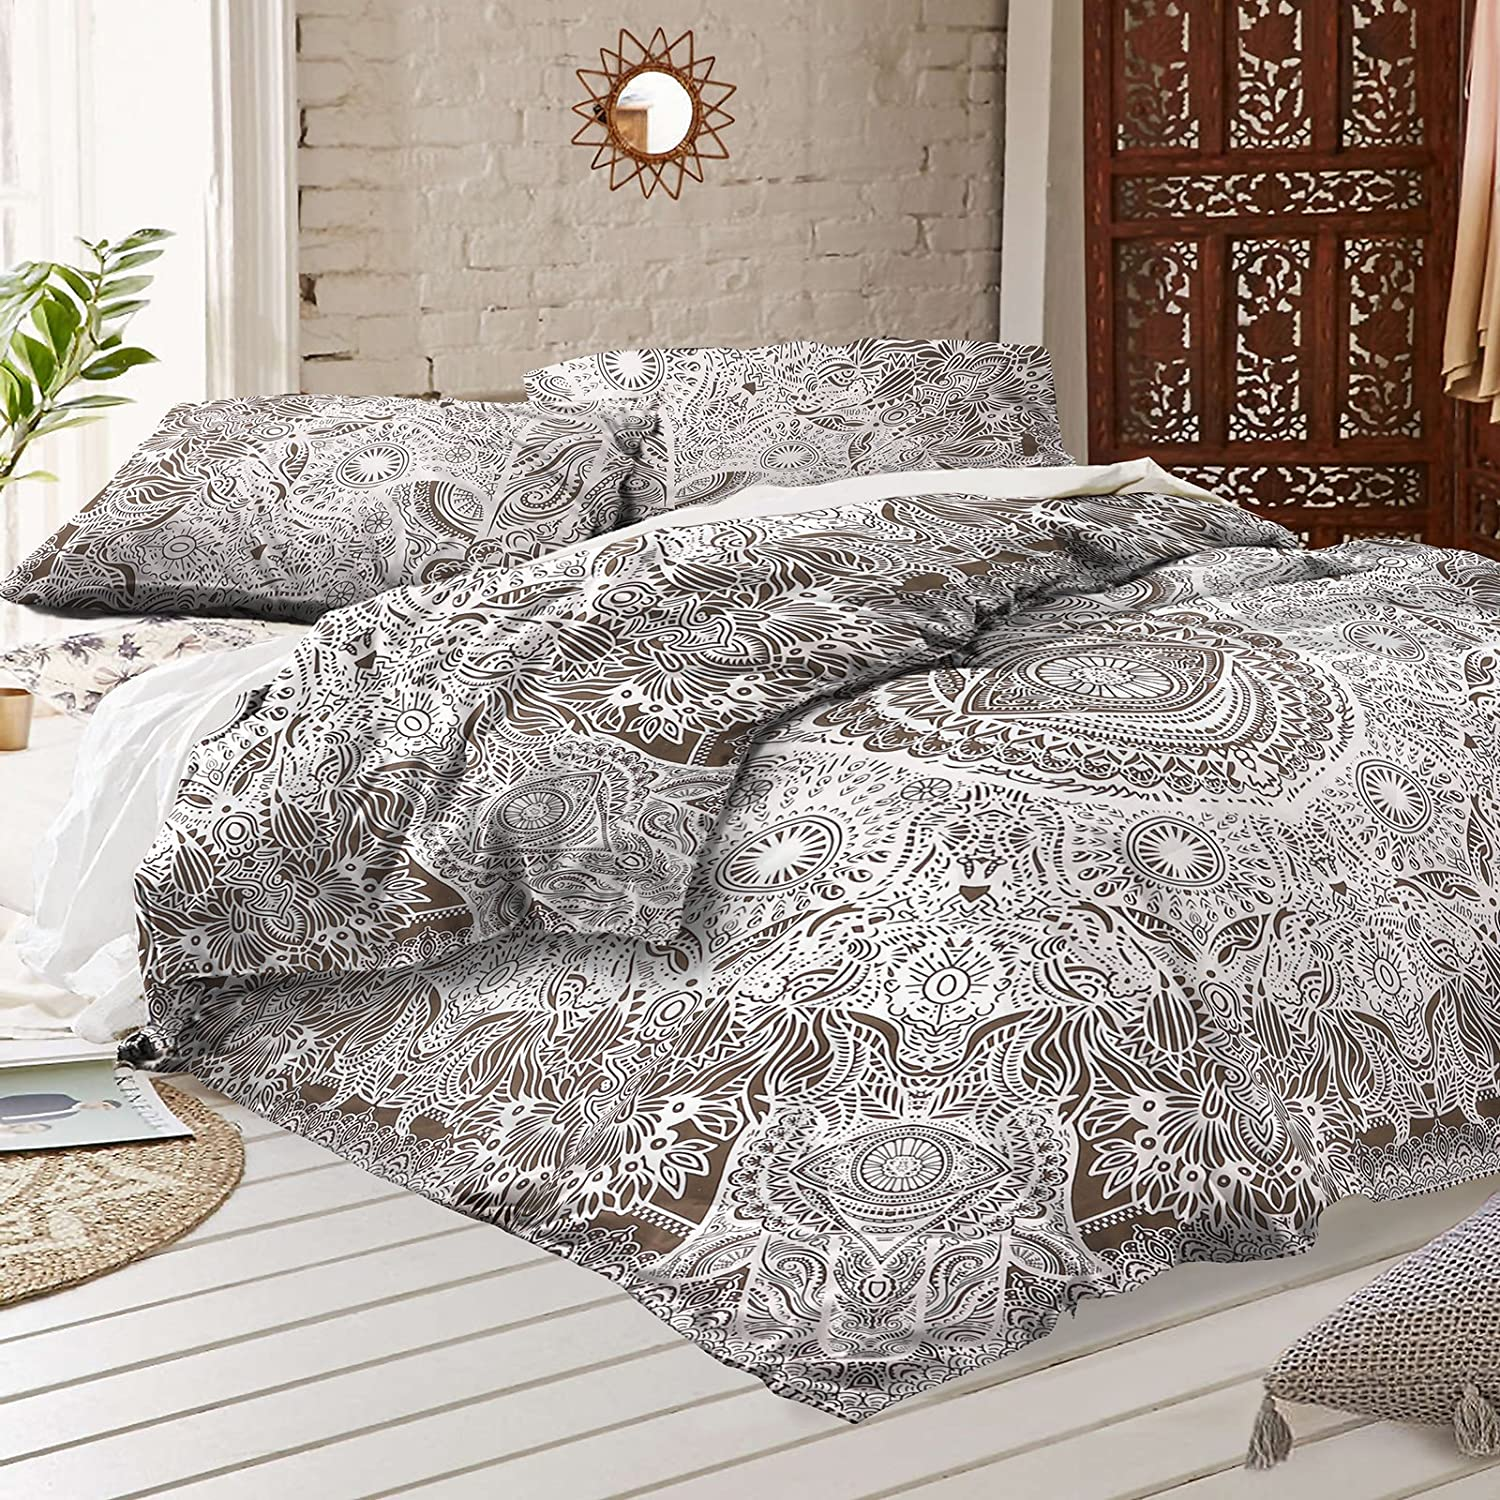 Amazon Bohemian Cotton Doona Duvet Cover With 2 Pillowcases By